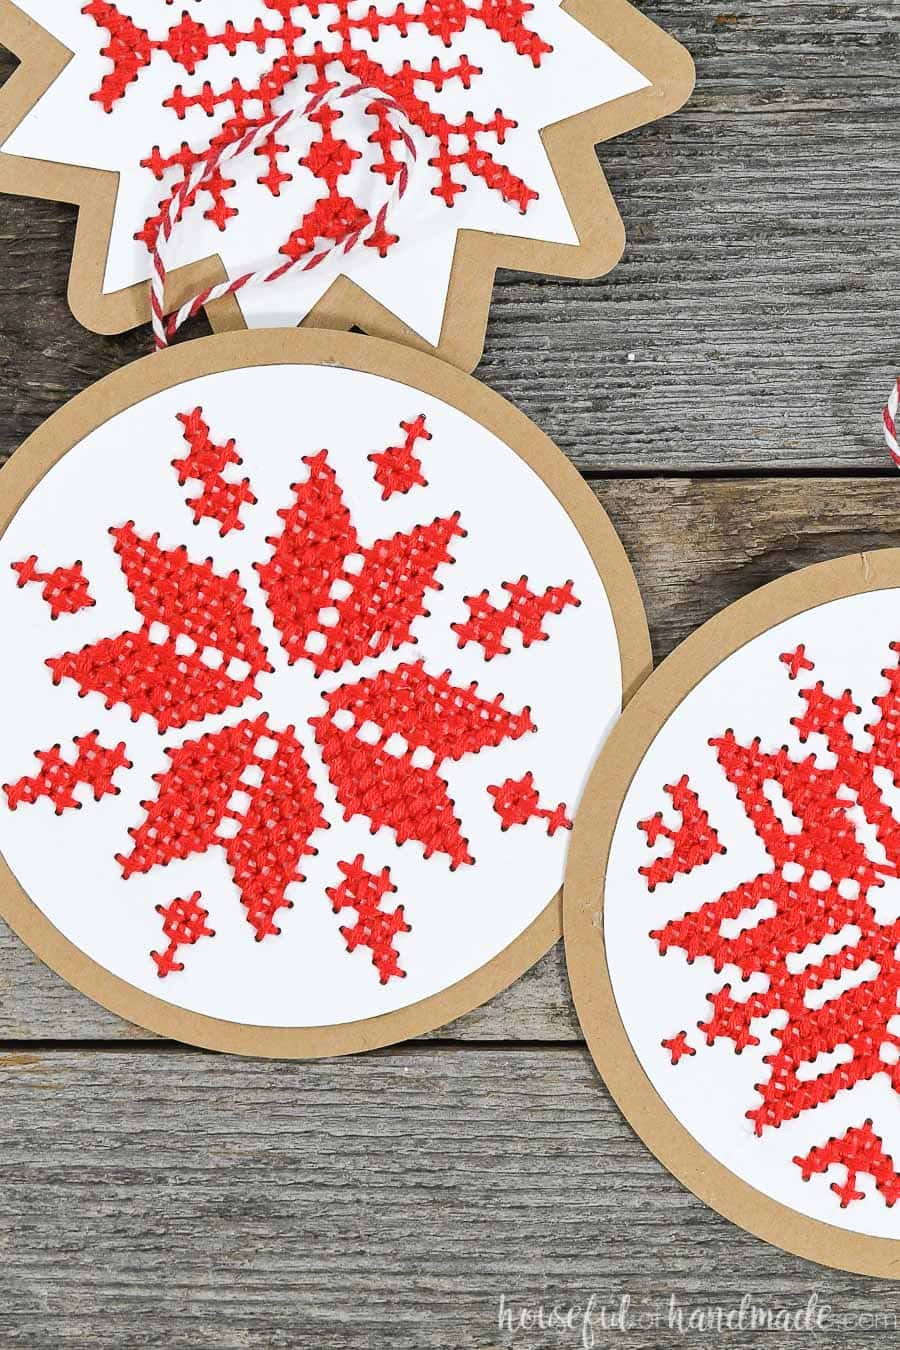 Cross-stitched snowflake designs on paper Christmas ornaments laying on a wood background.